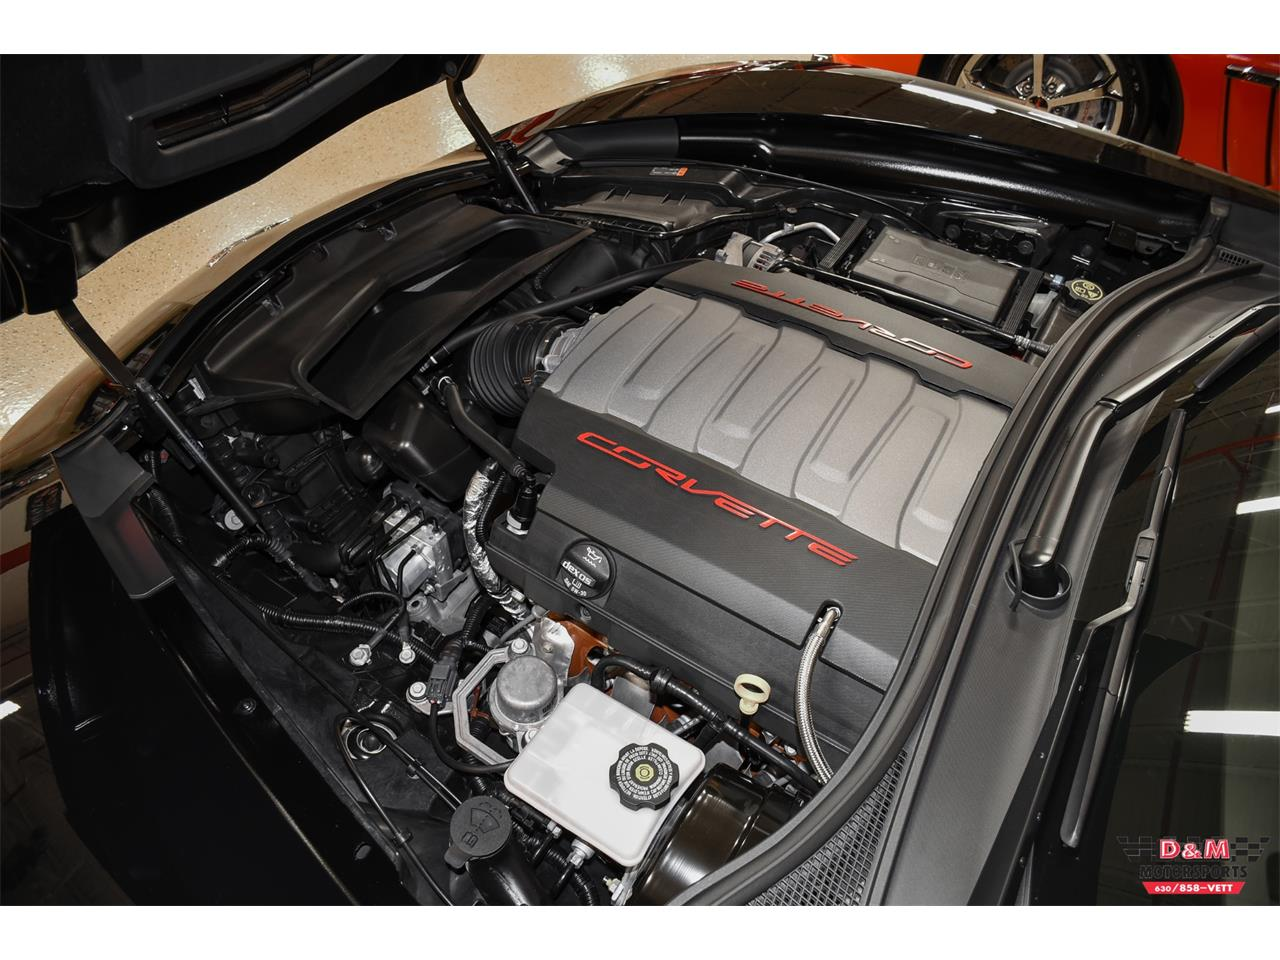 Large Picture of '15 Chevrolet Corvette located in Glen Ellyn Illinois - $50,995.00 Offered by D & M Motorsports - PZ21